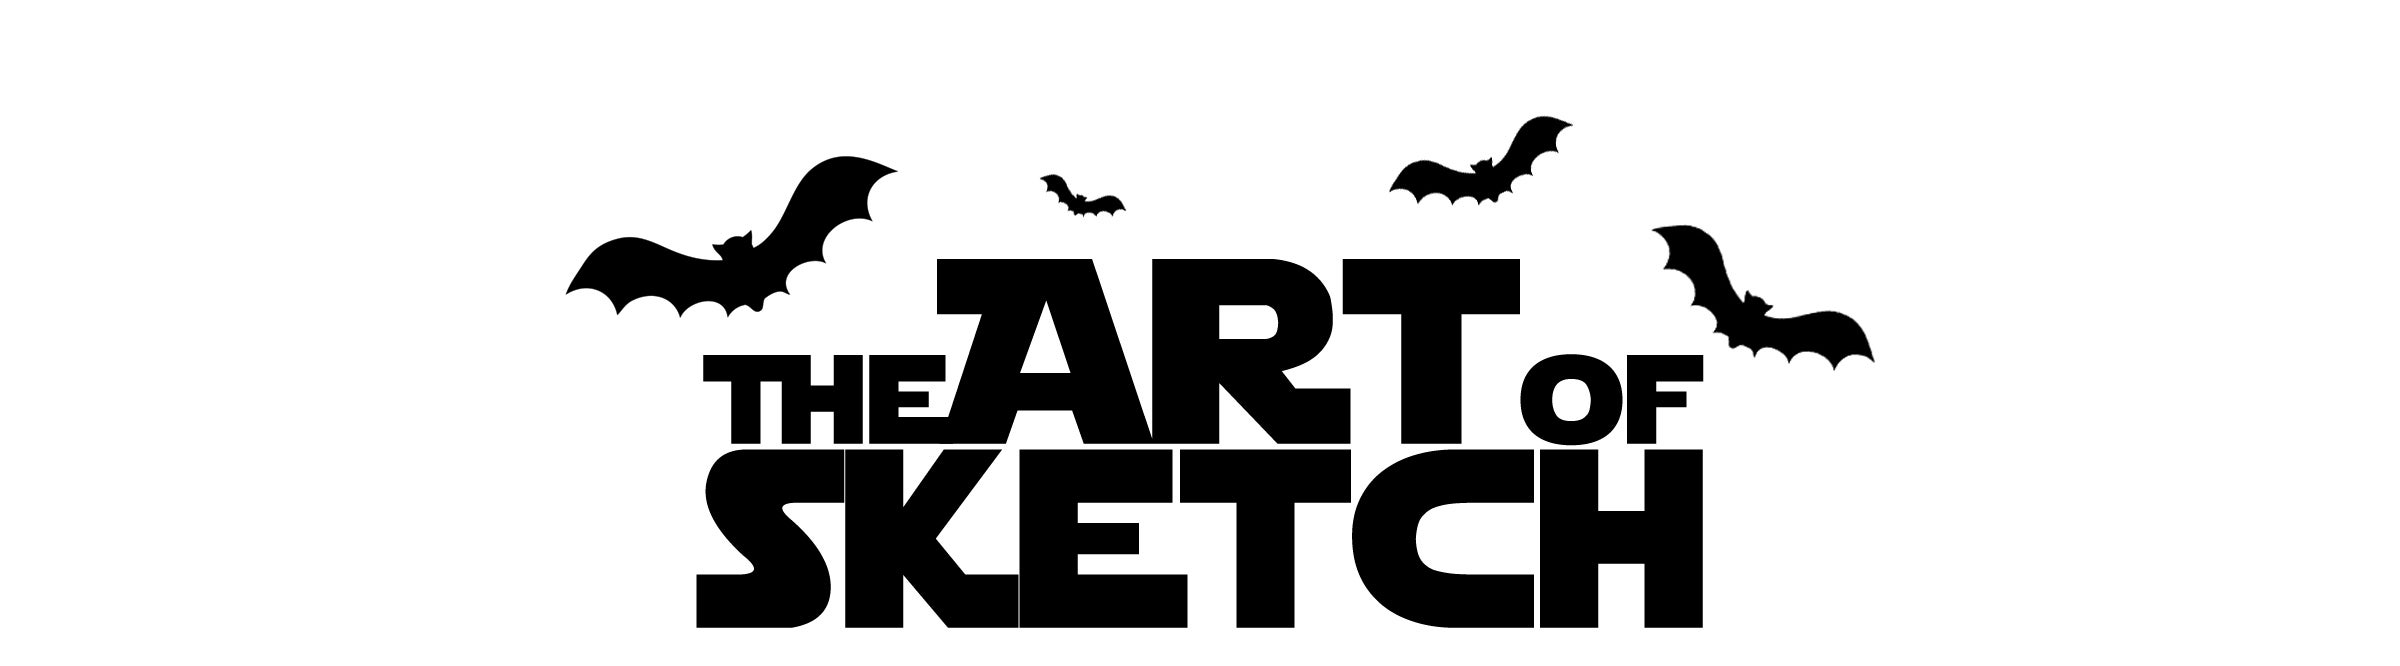 The art of Sketch